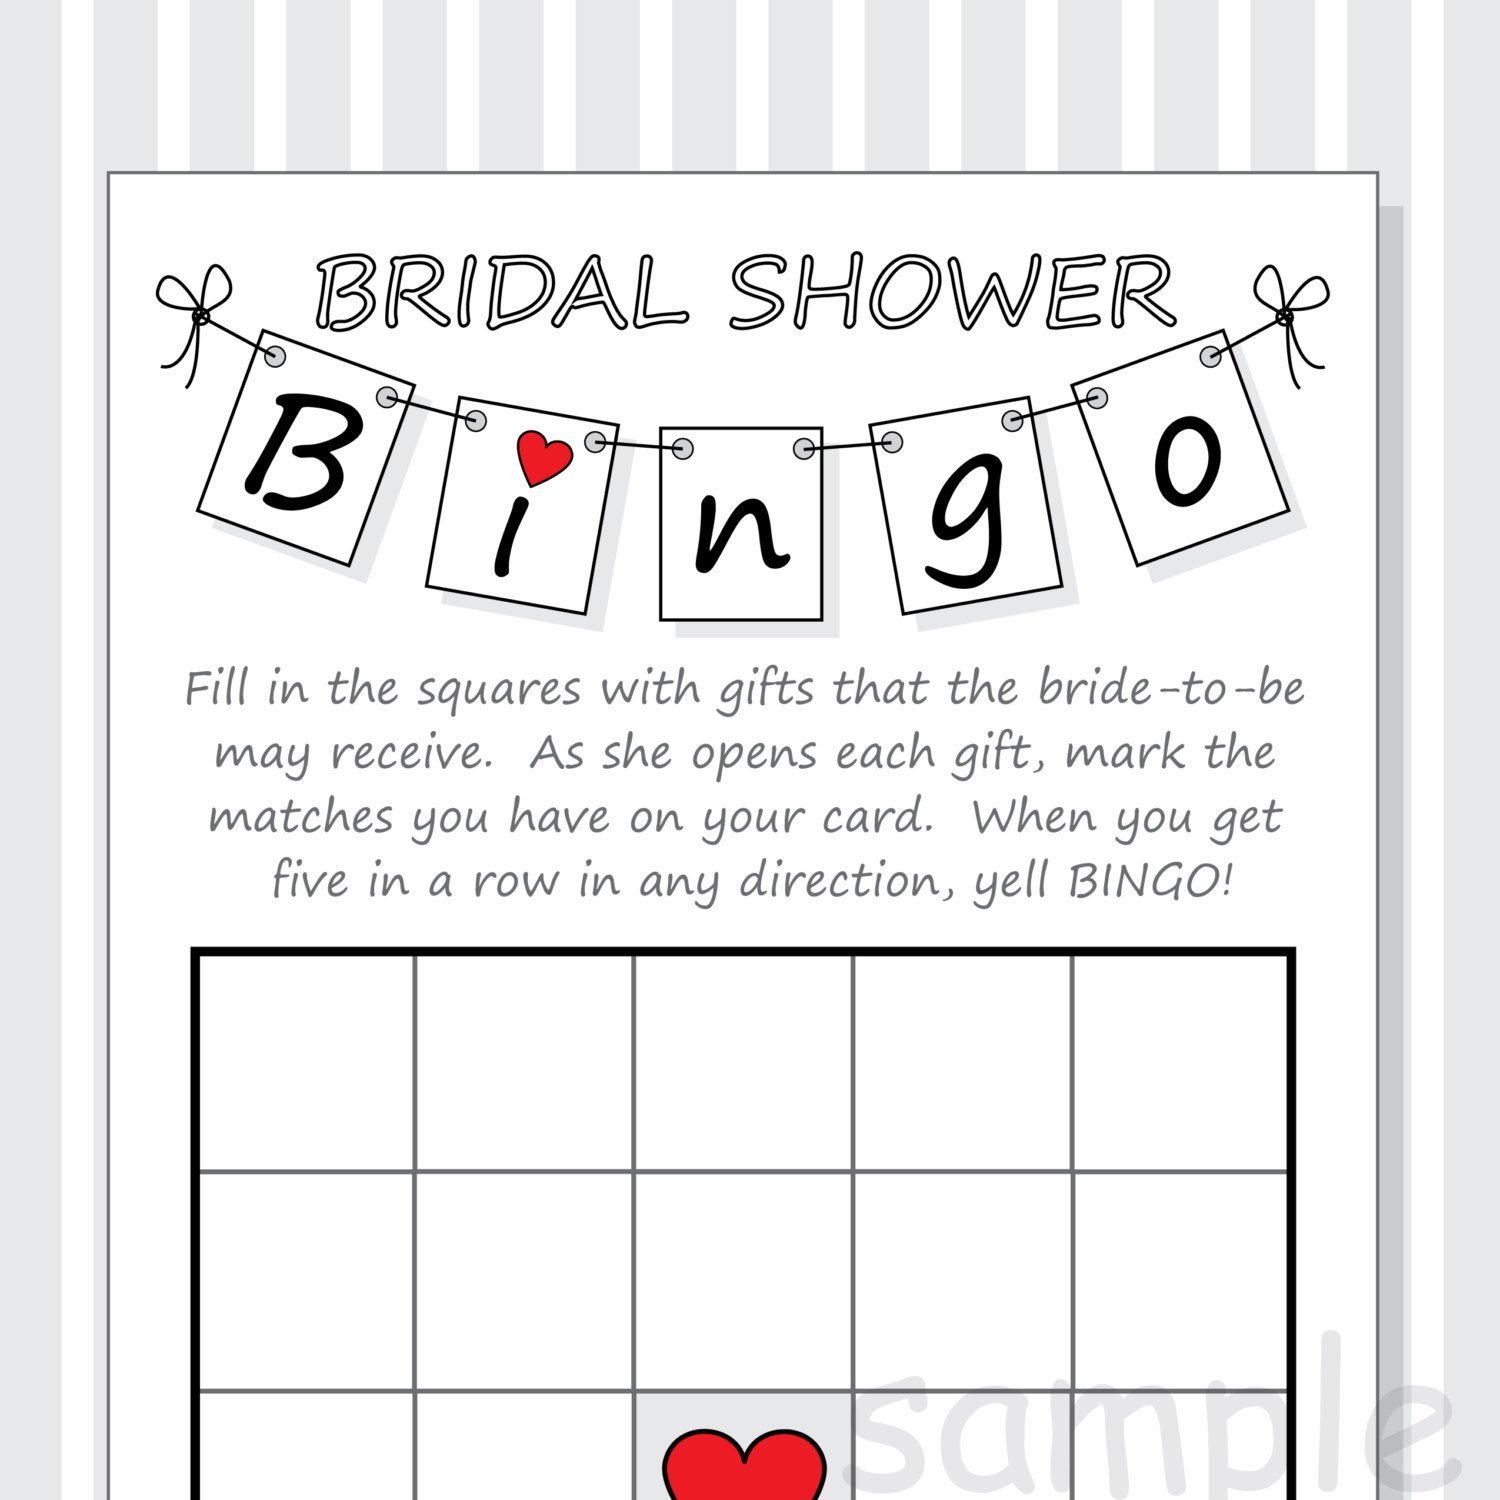 Bridal Shower Bingo Template Diy Bridal Shower Bingo Printable Cards Pennant Design Red